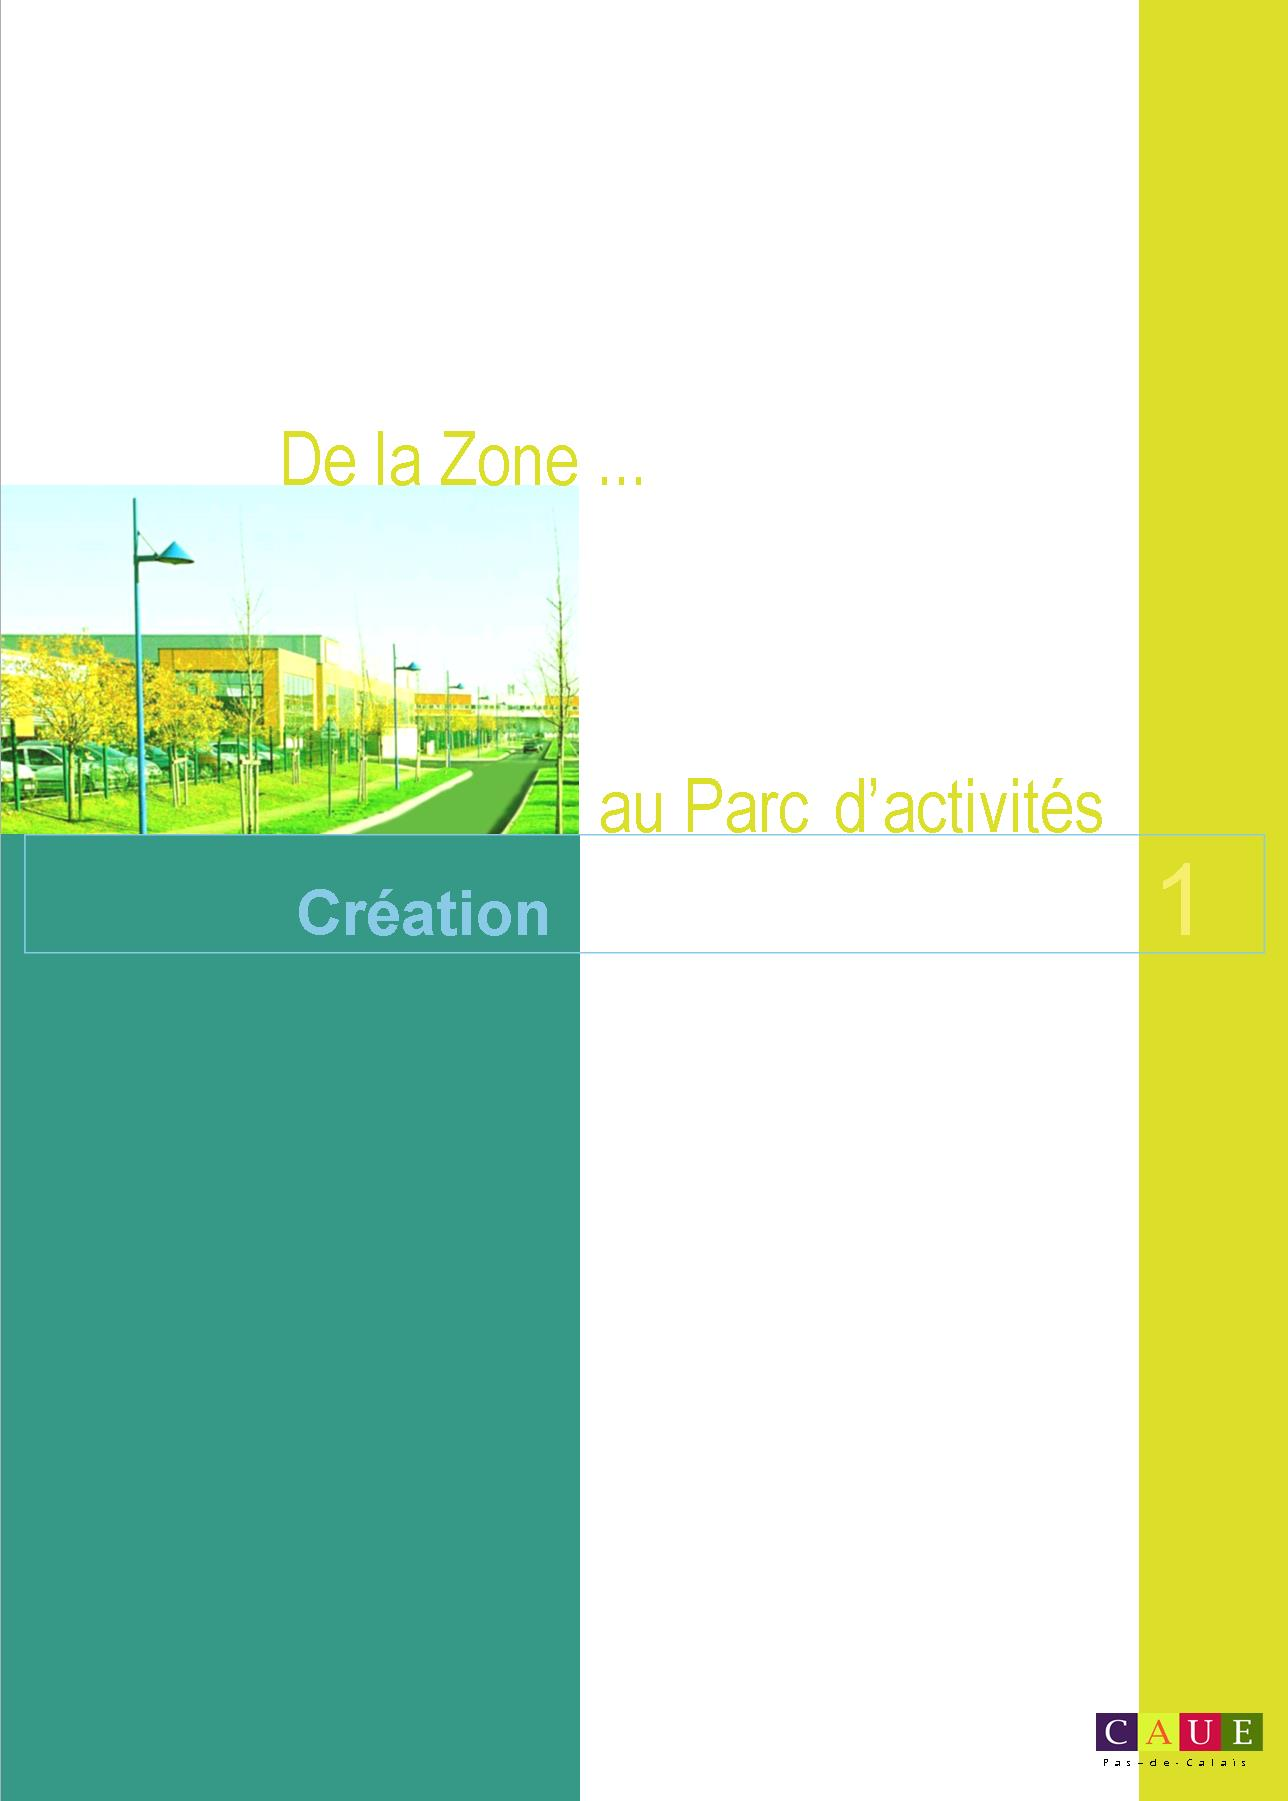 de-la-zone-au-parc-d-activites-creation